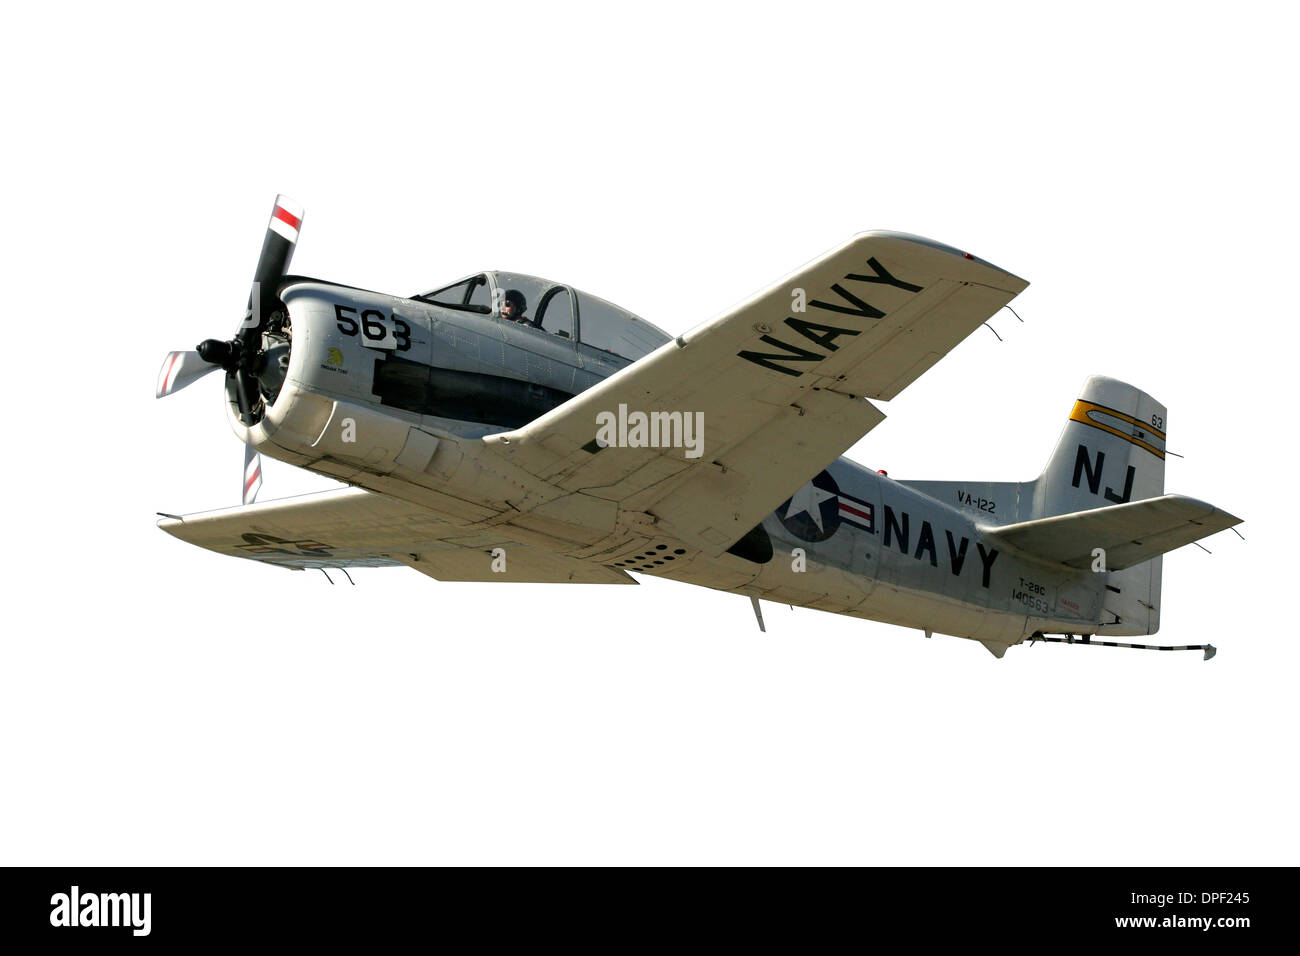 Cutout of North American T-28 Trojan Military Trainer - Stock Image